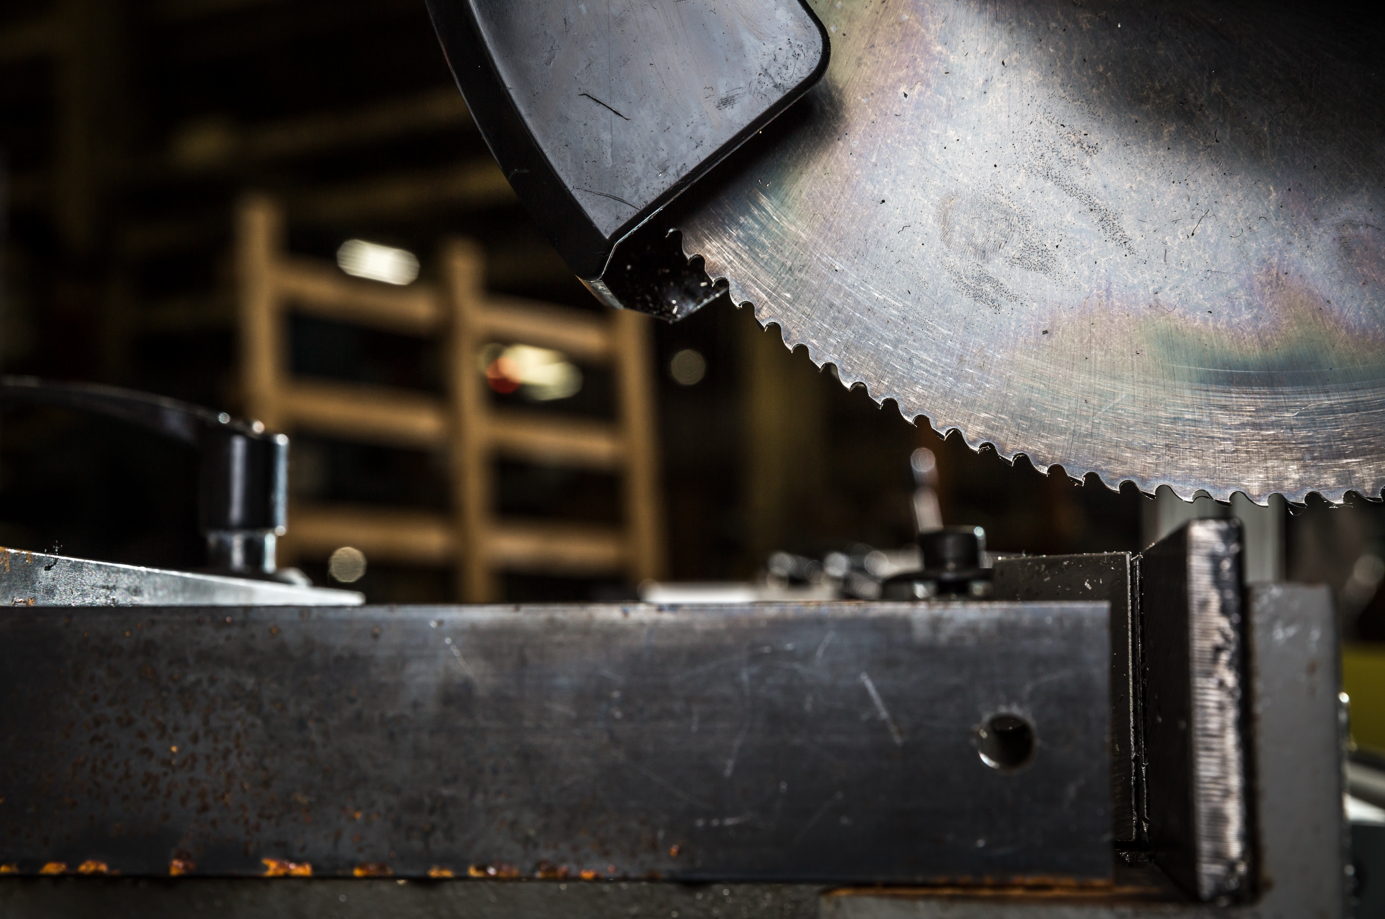 Manually Operated Cold Saw Models That Can Cut Materials Like Butter